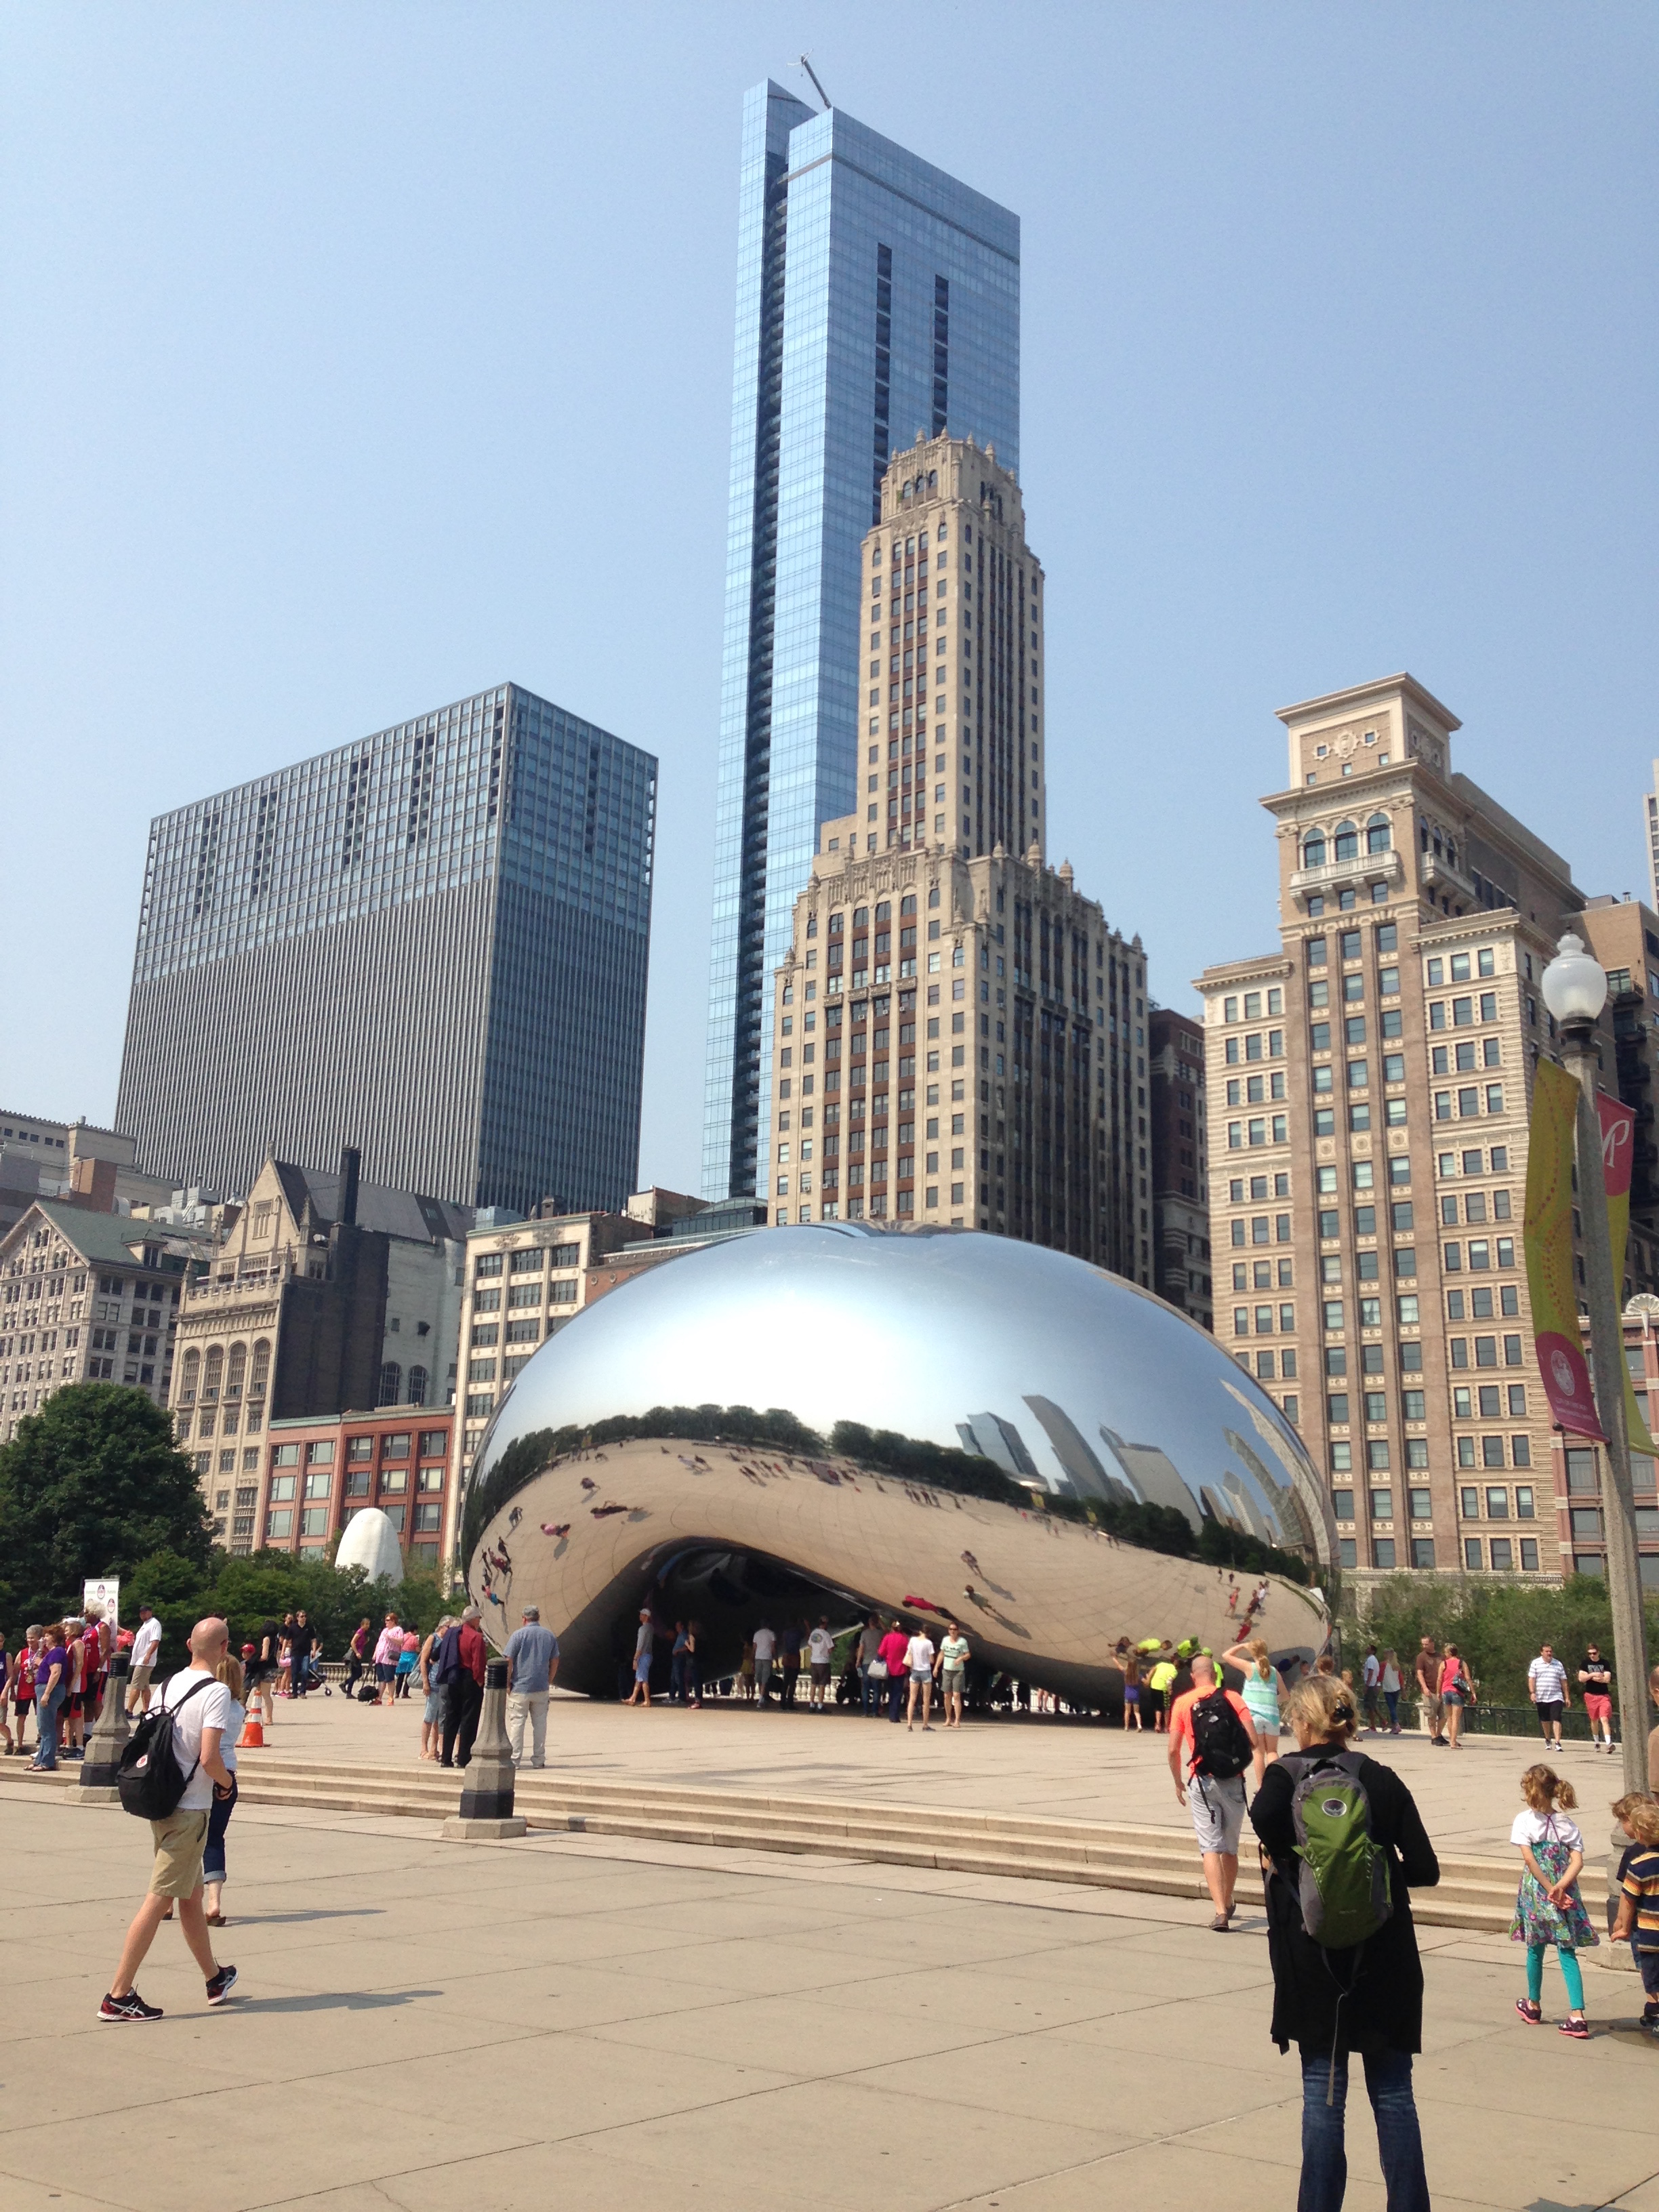 The Bean, aka Cloud Gate